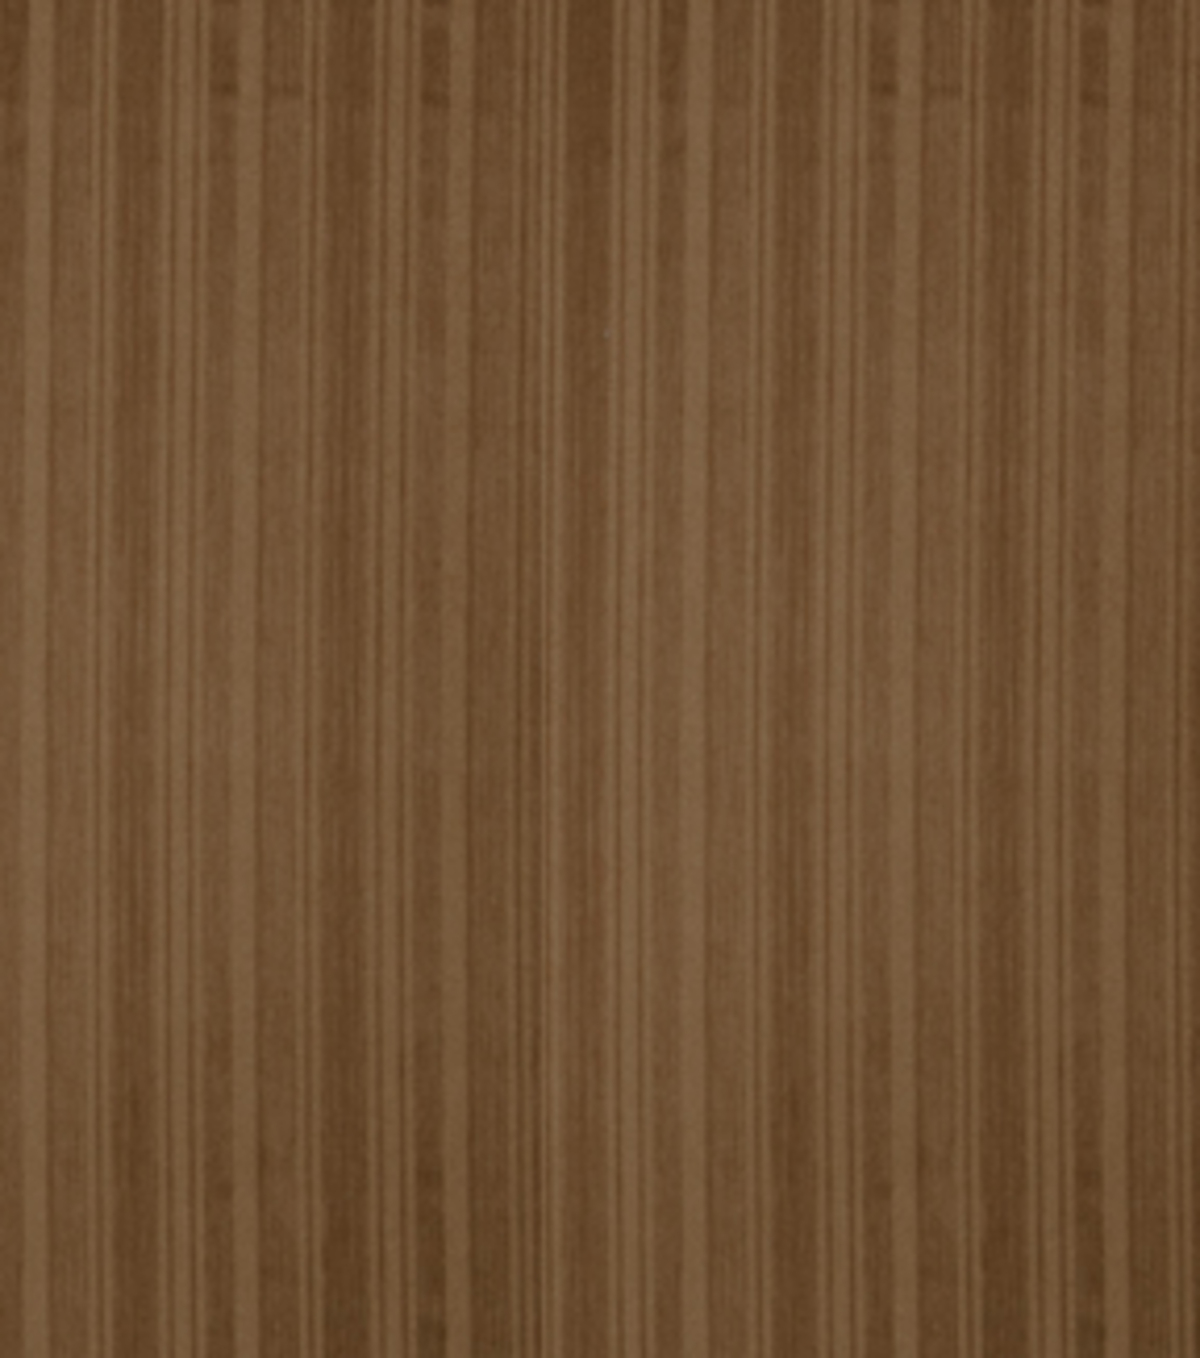 8\u0027\u0027x8\u0027\u0027 Home Decor Fabric Swatch-Solid Fabric Eaton Square Larson Chocolate